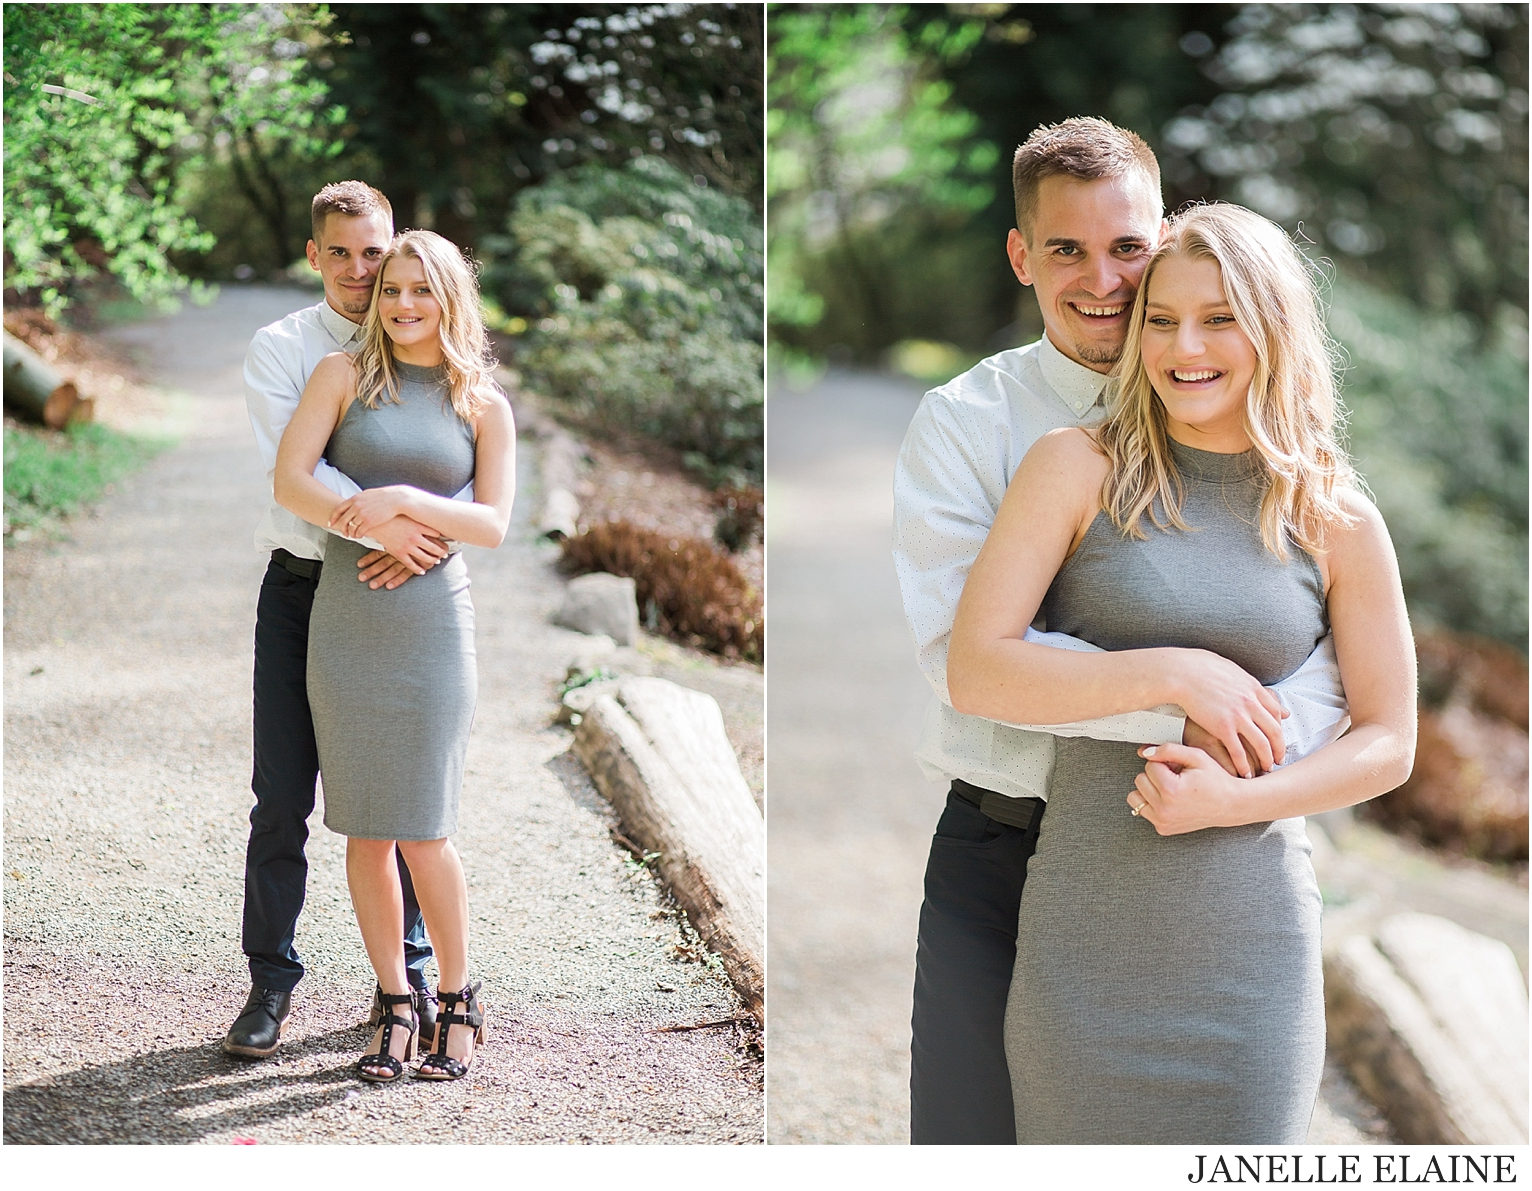 tricia and nate engagement photos-janelle elaine photography-23.jpg